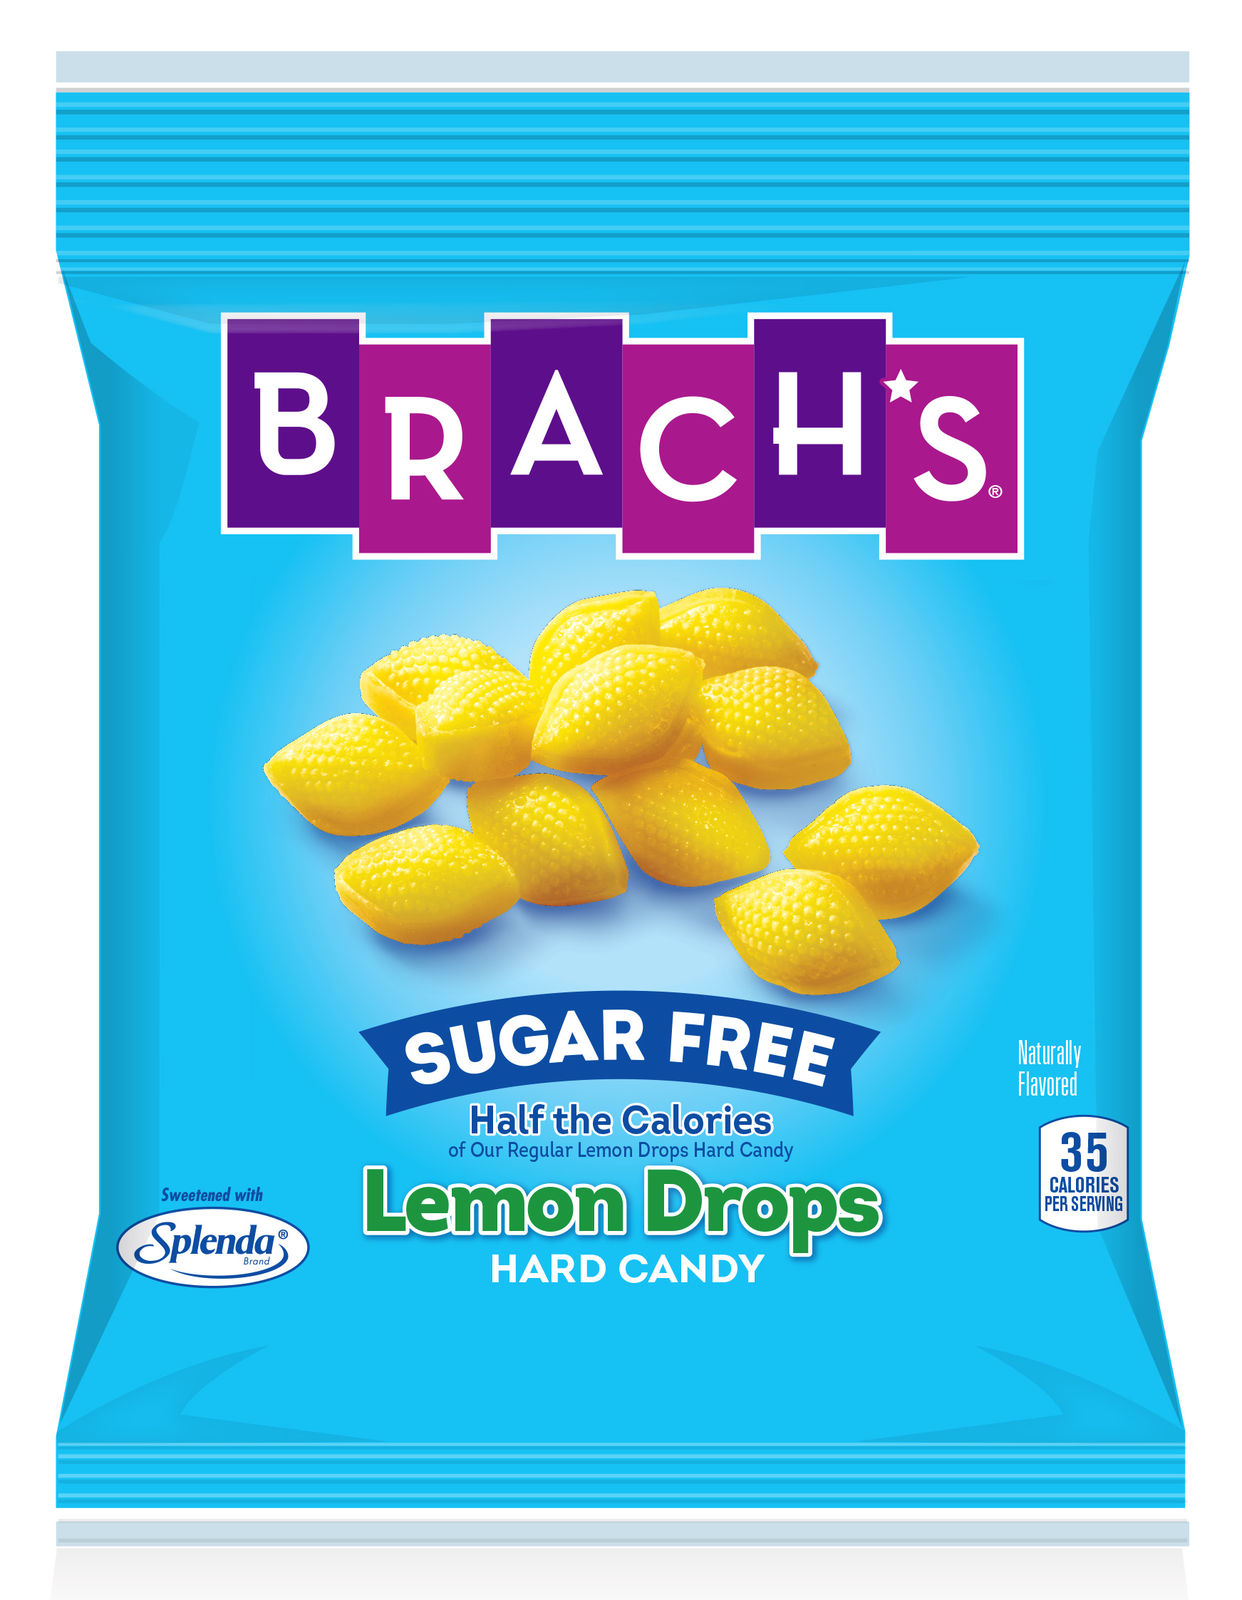 Brach's Sugar Free Lemon Drops Hard Candy, 4.5oz Bag